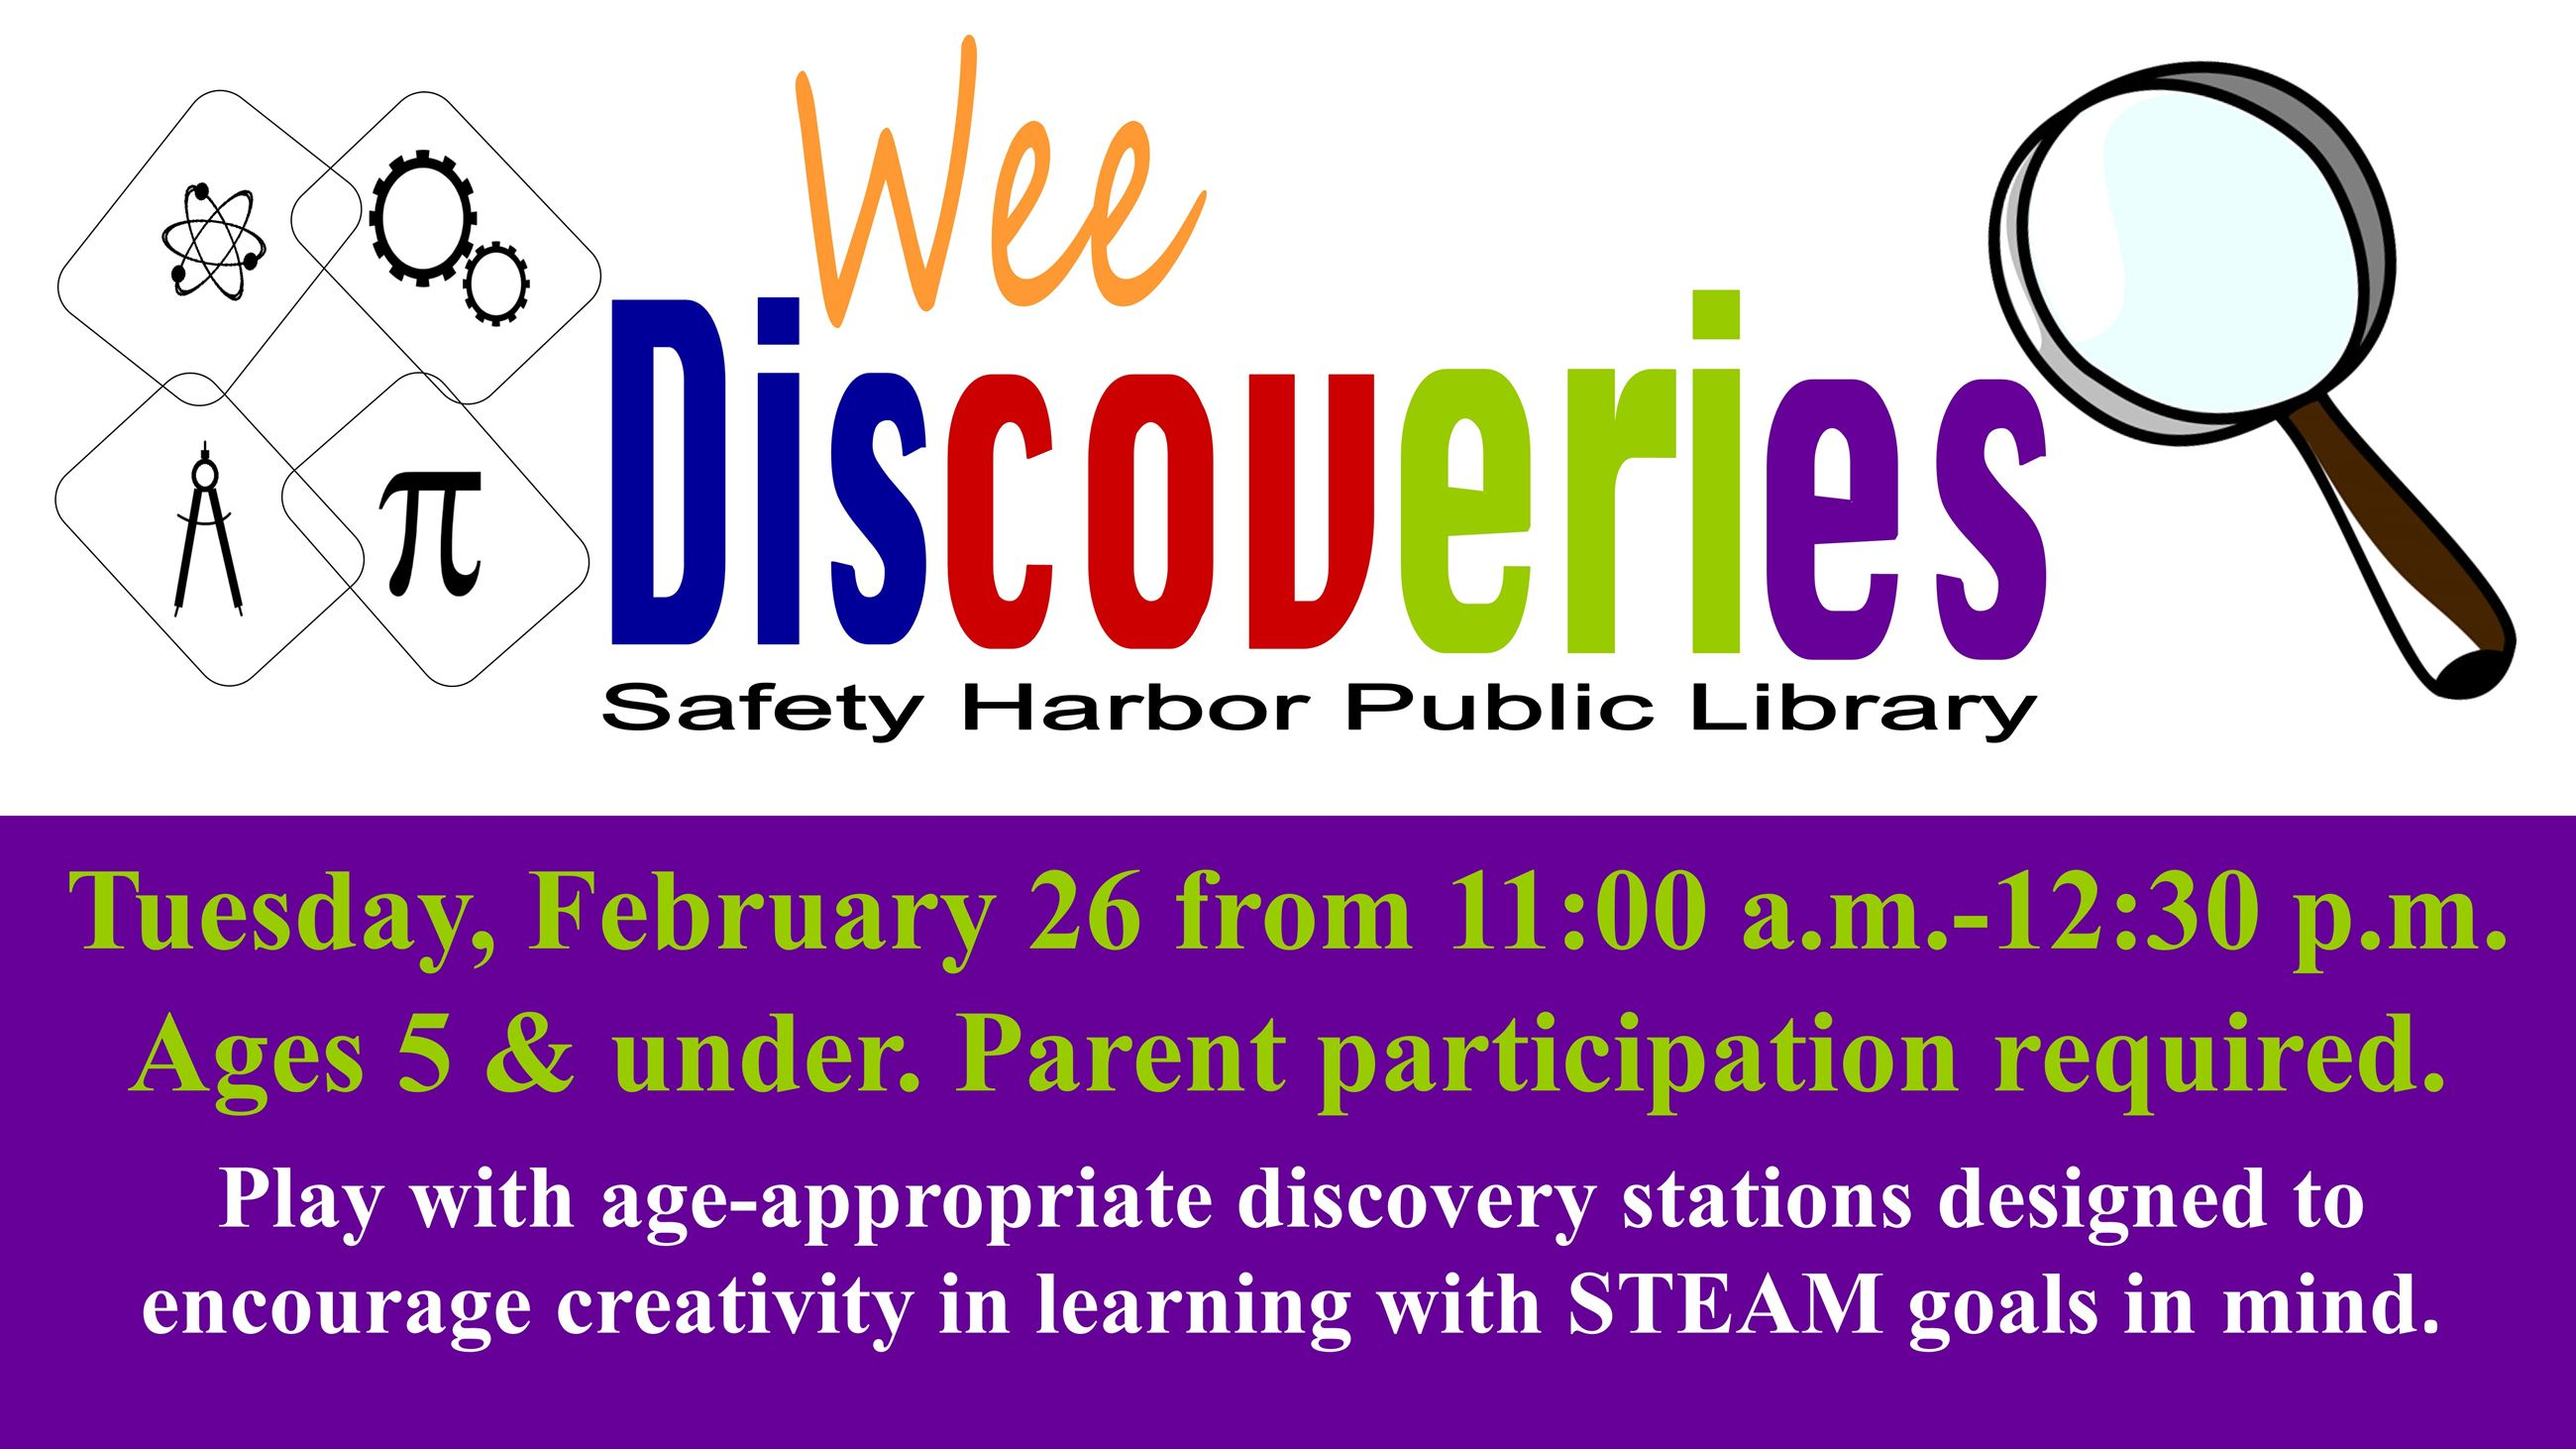 Wee Discoveries. February 26 from 11 a.m. to 12:30 p.m. Ages 5 & under. Parent participation require